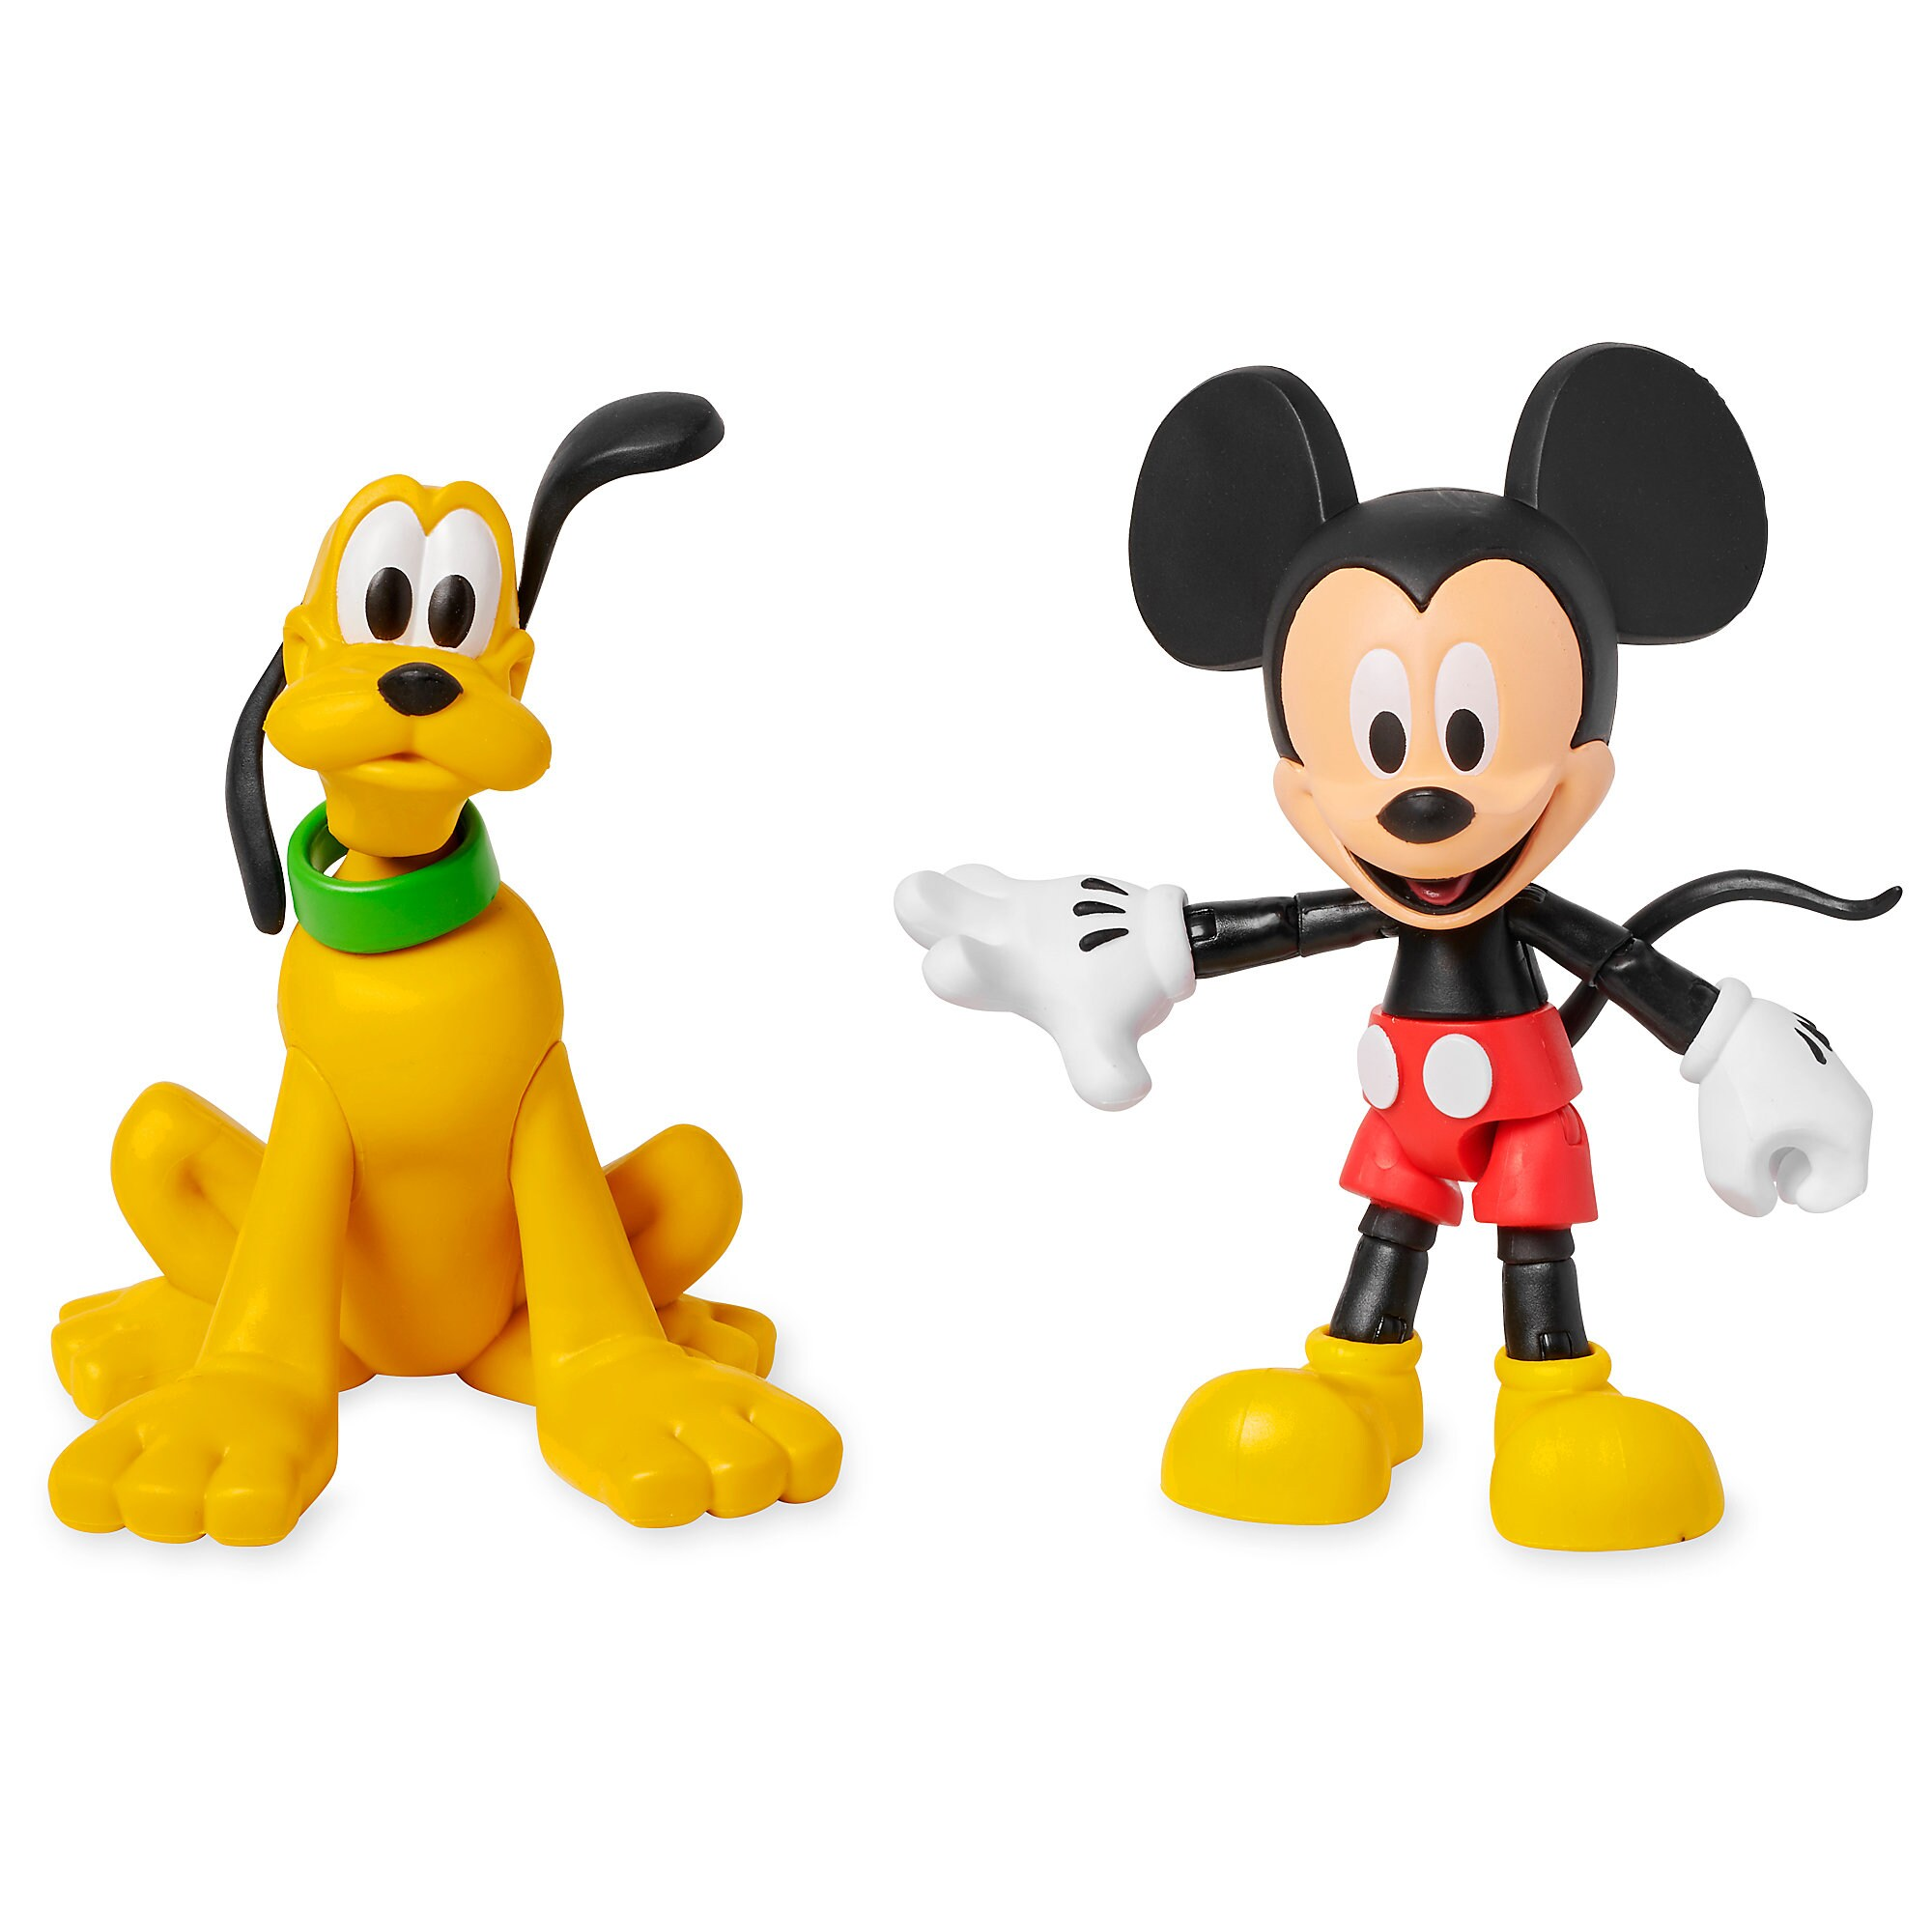 Disney Mickey Mickey Mouse And Pluto Action Figure Set Disney Toybox